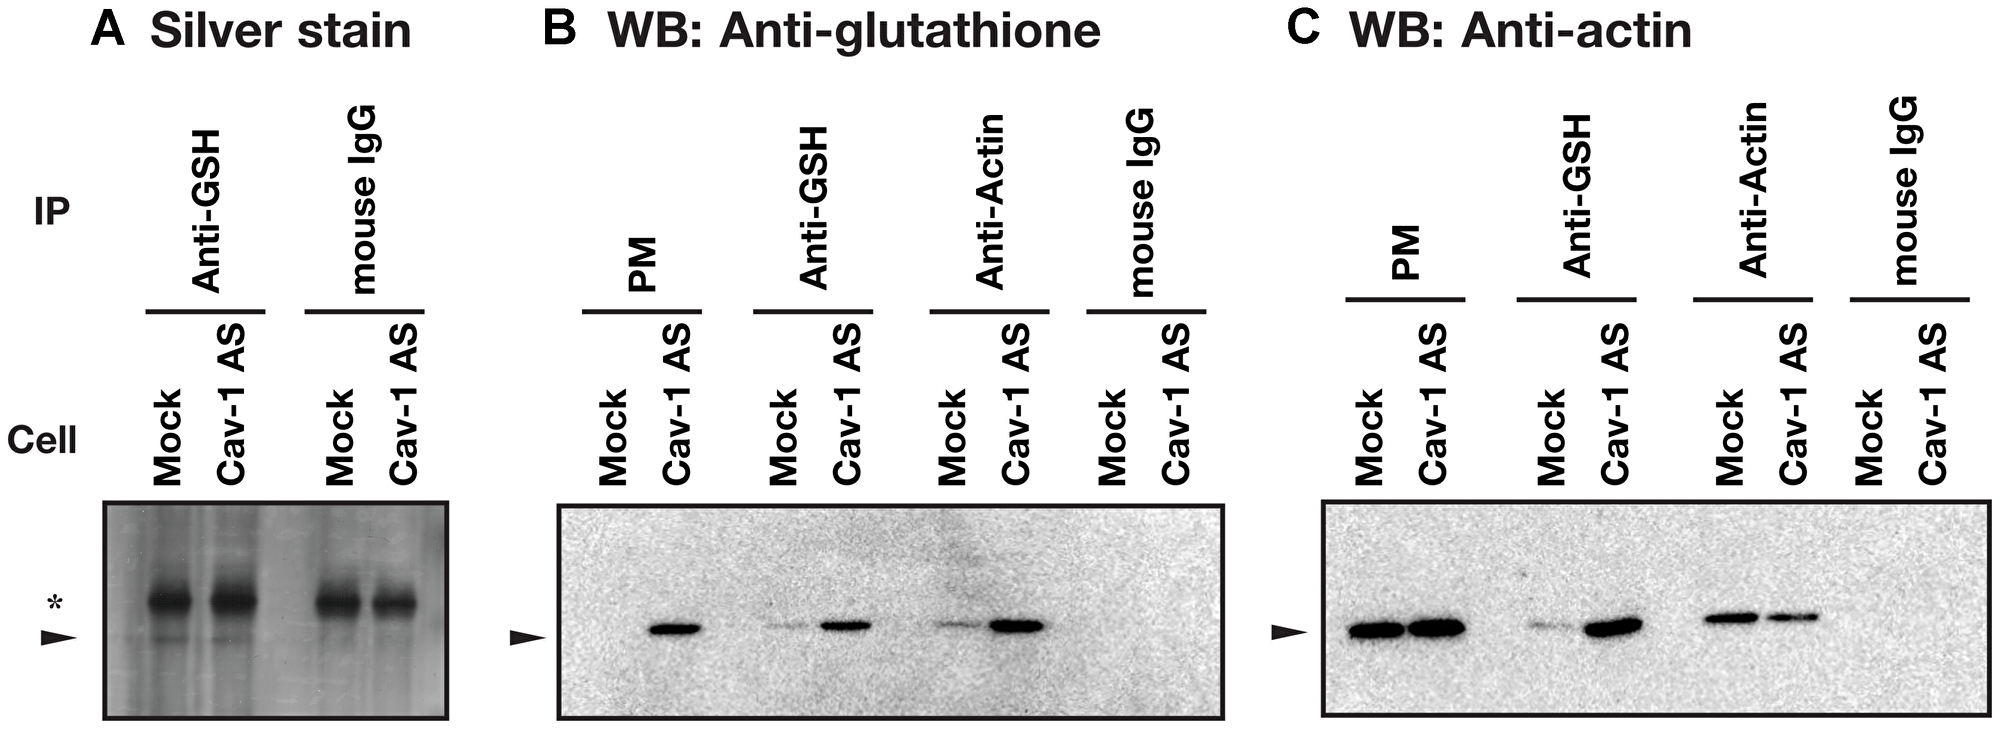 Identification of actin as a S-glutathionylated protein.